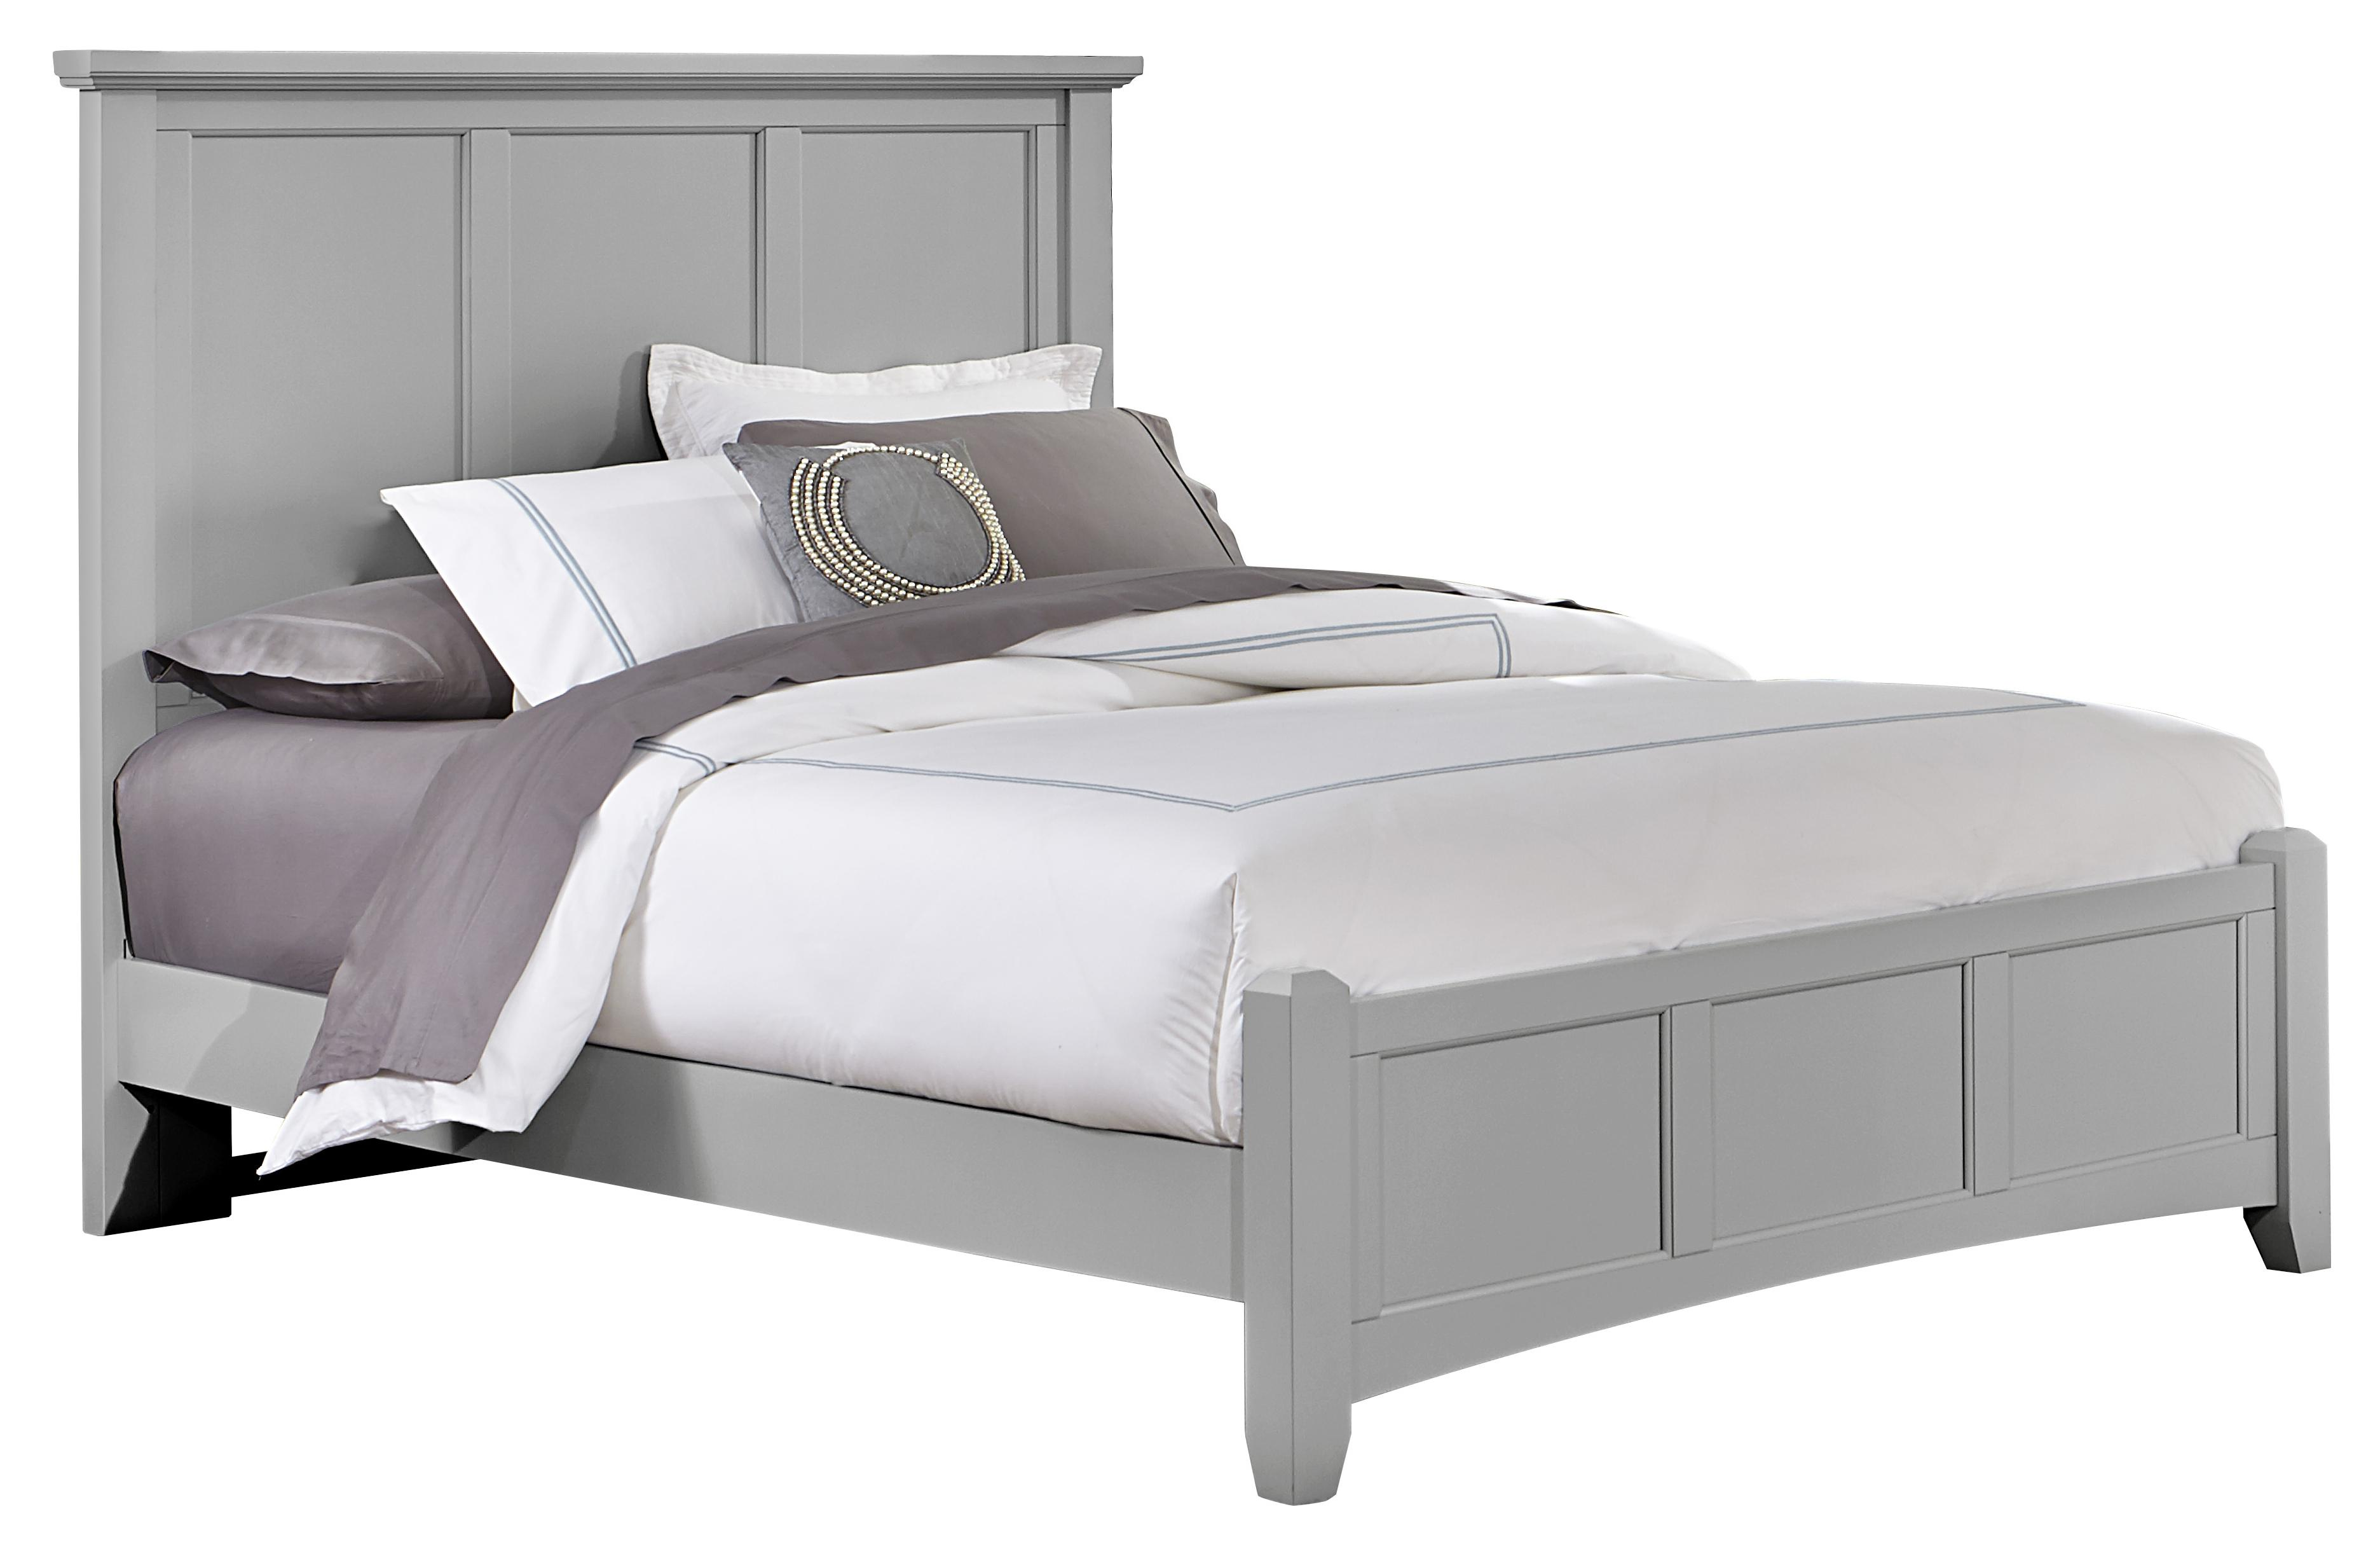 Vaughan Bassett Bonanza Queen Mansion Bed with Low Profile